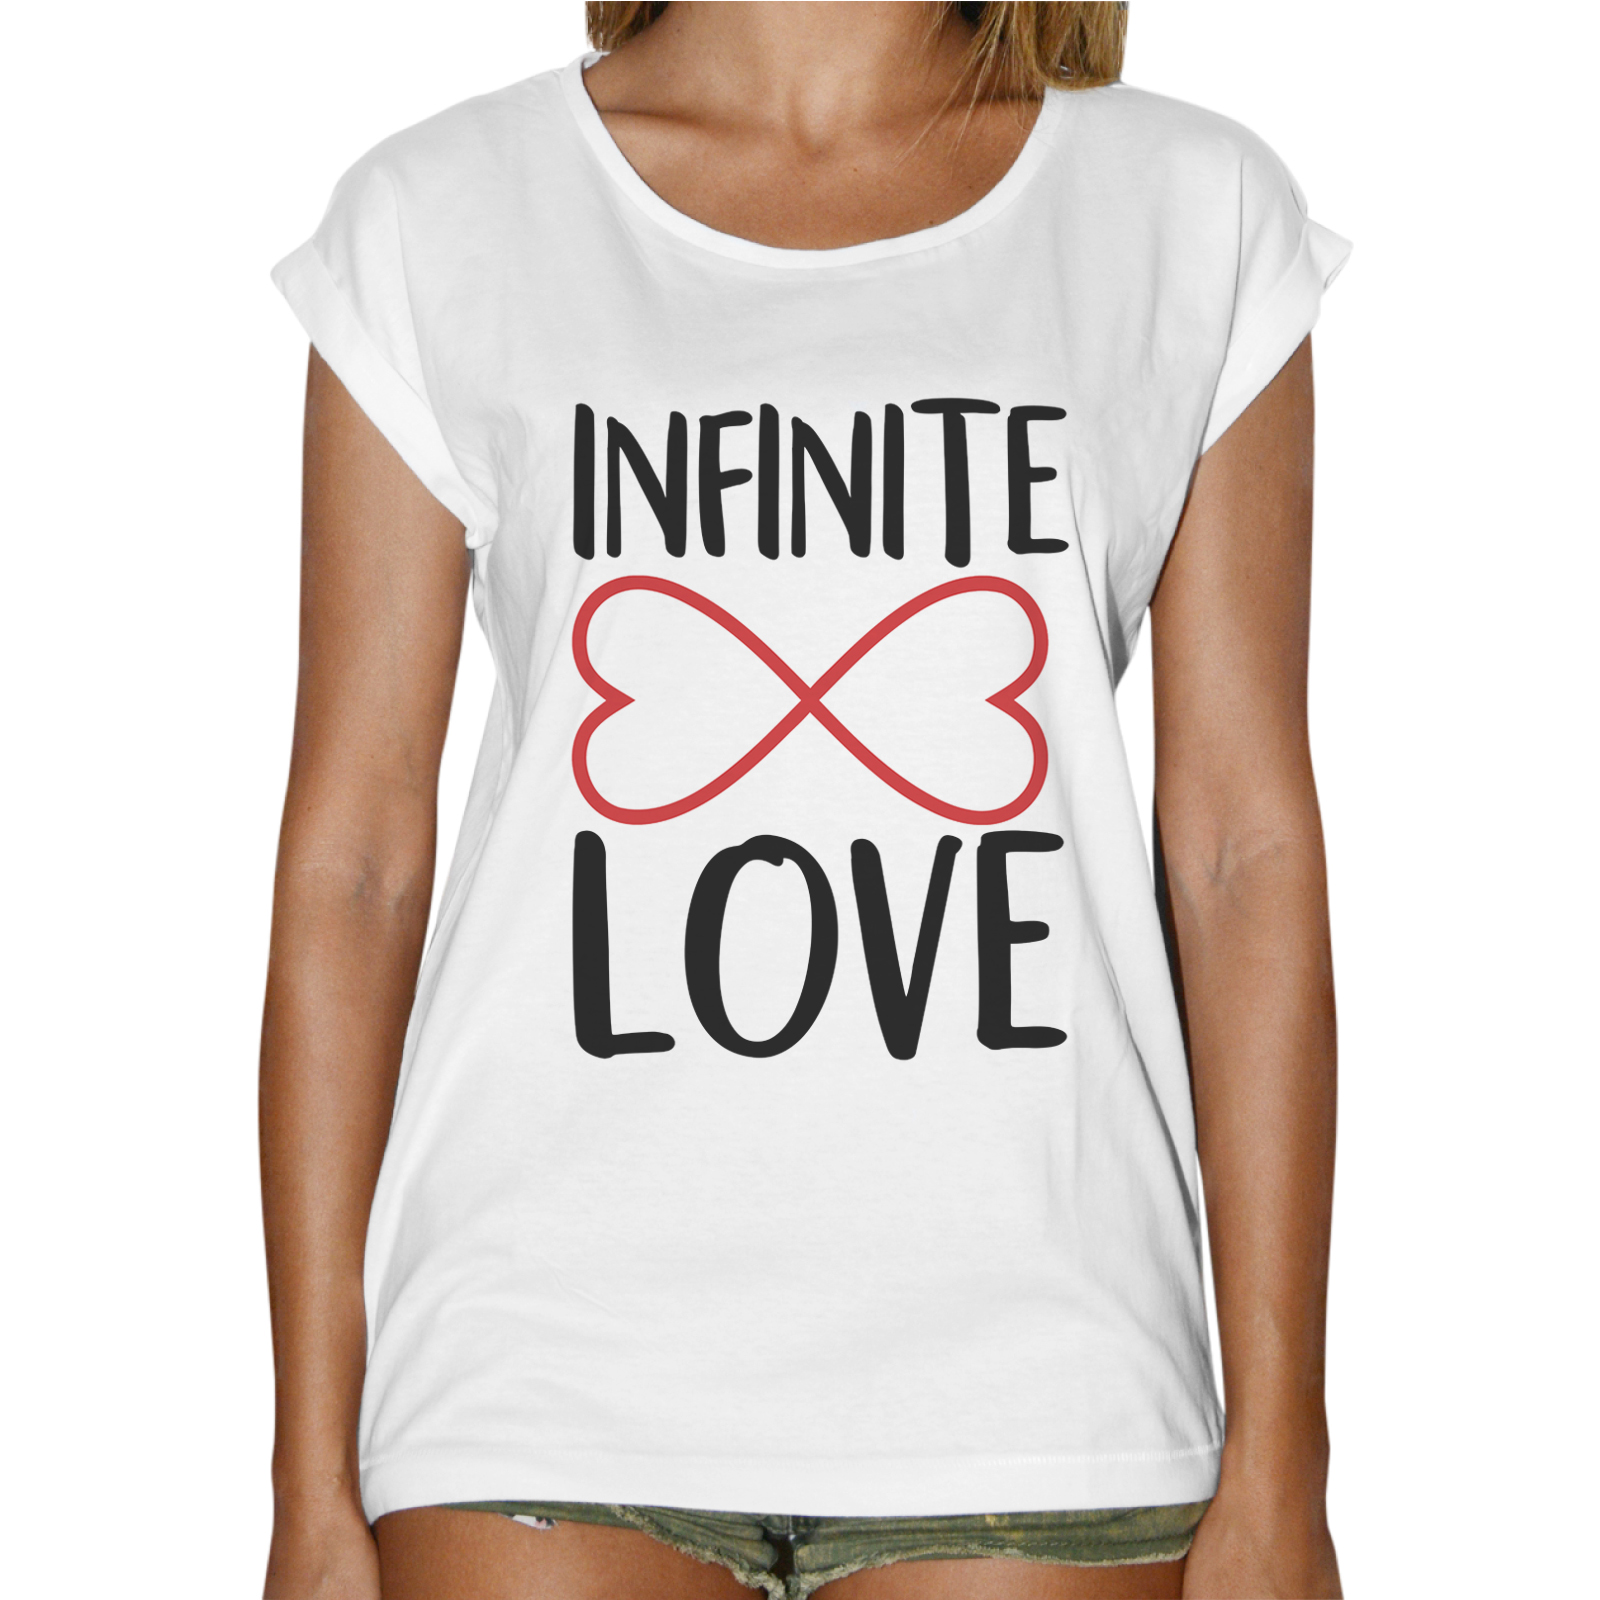 T-Shirt Donna Fashion INFINITE LOVE